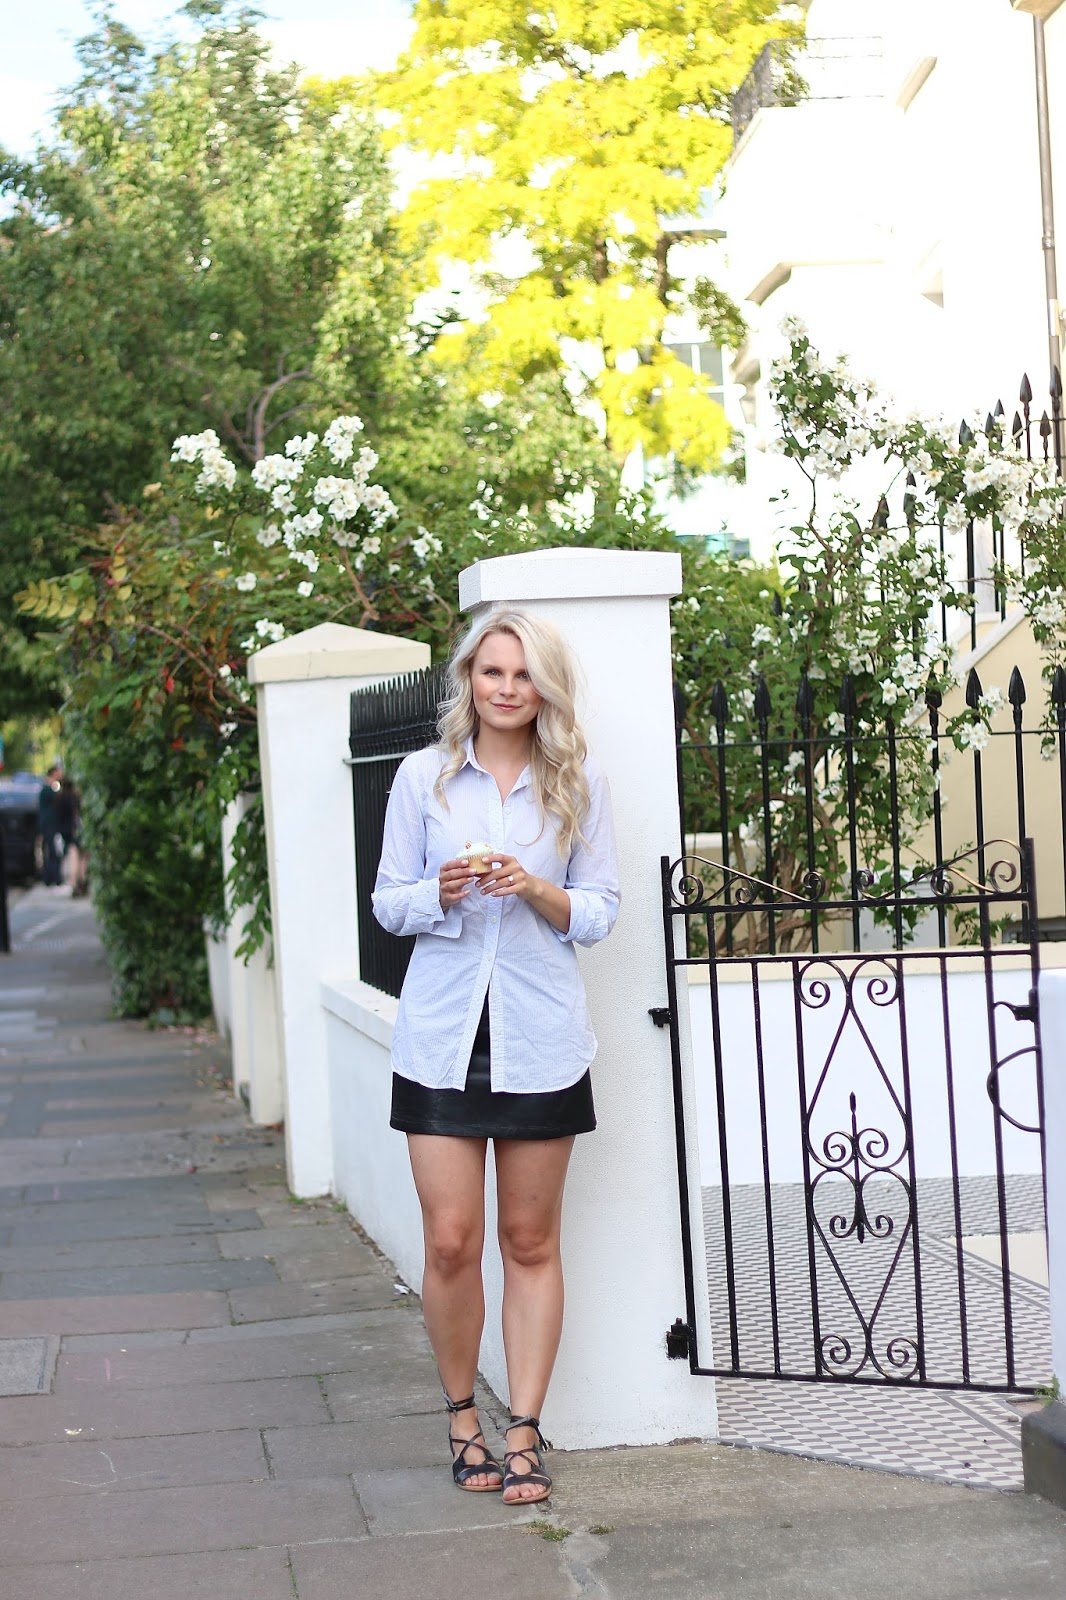 a girl wearing a leather skirt and preppy collar shirt poses for a pictures with a vanilla cupcake on notting hill, london on a summer day